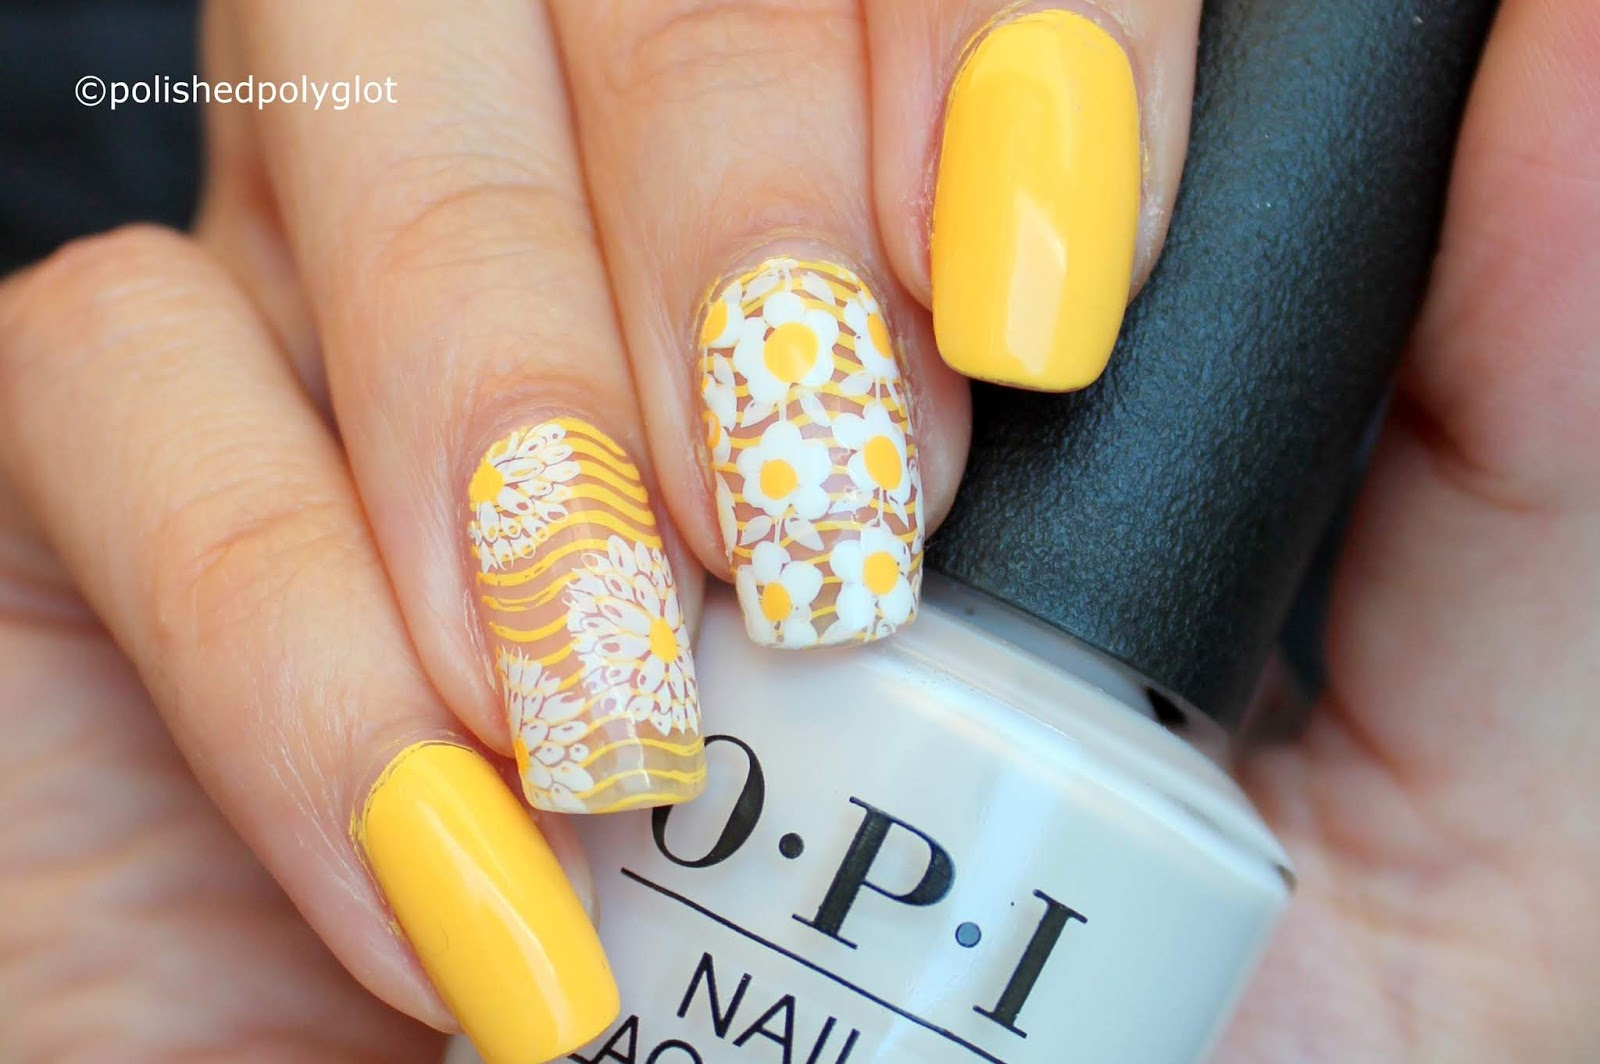 Nail Art Yellow And White Manicure With Daisies Polished Polyglot